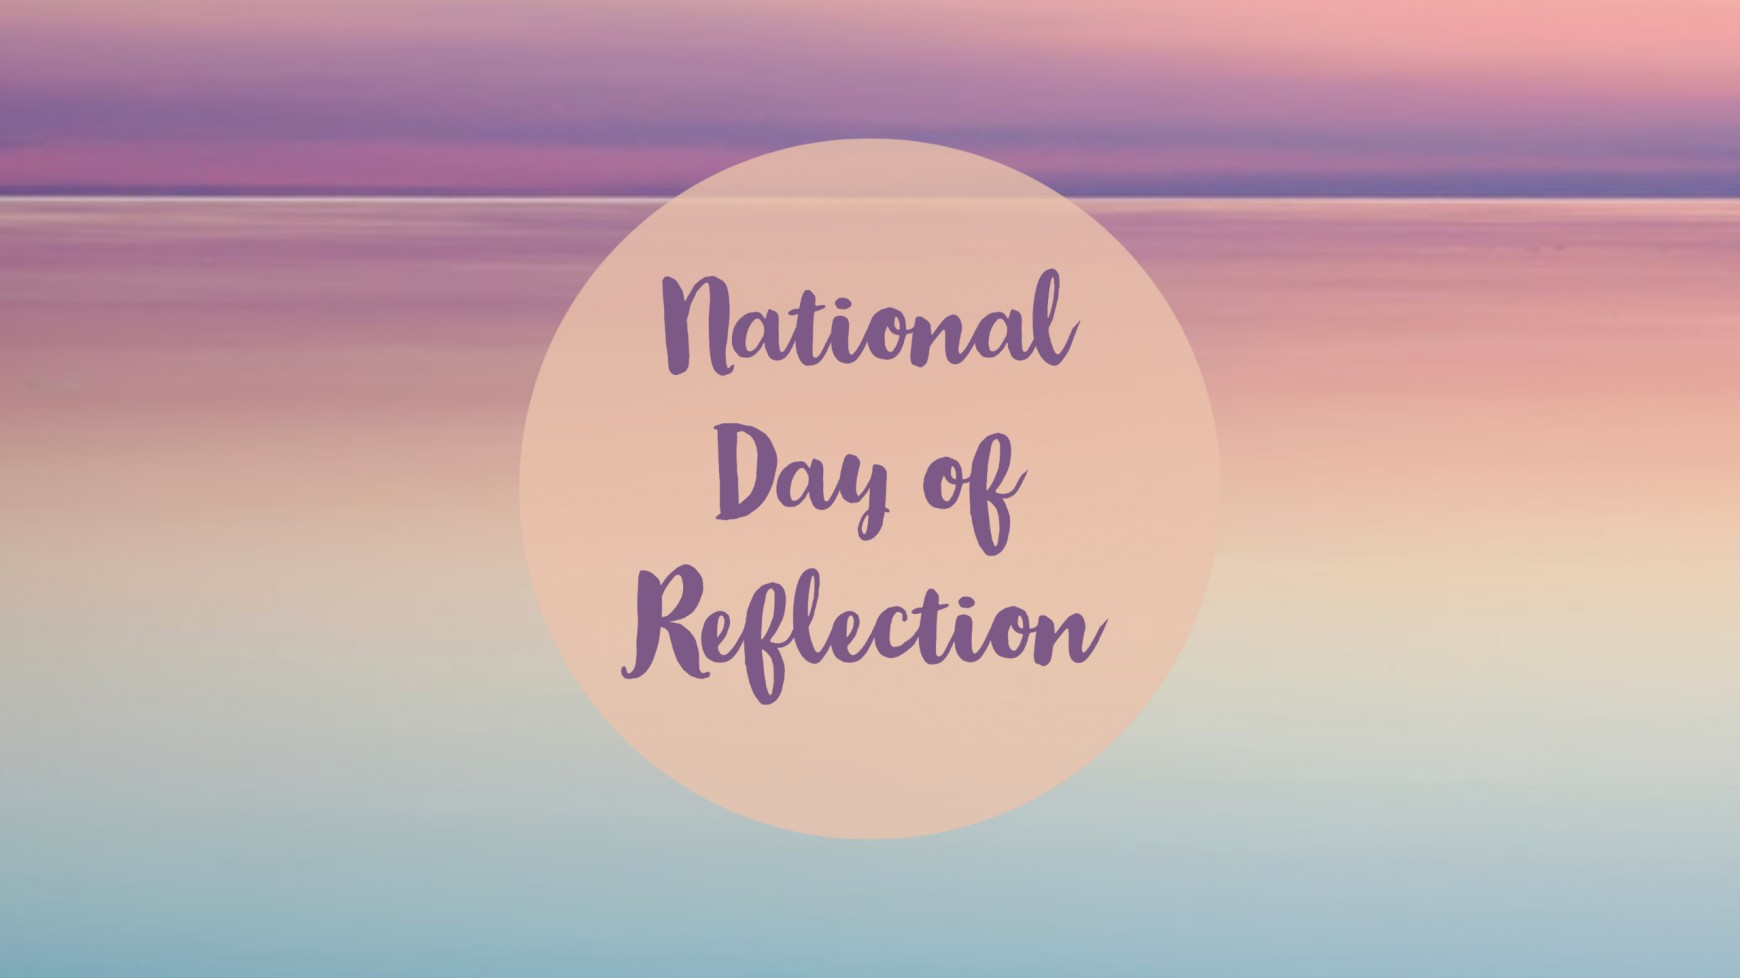 National Day of Reflection - Minutes Silence